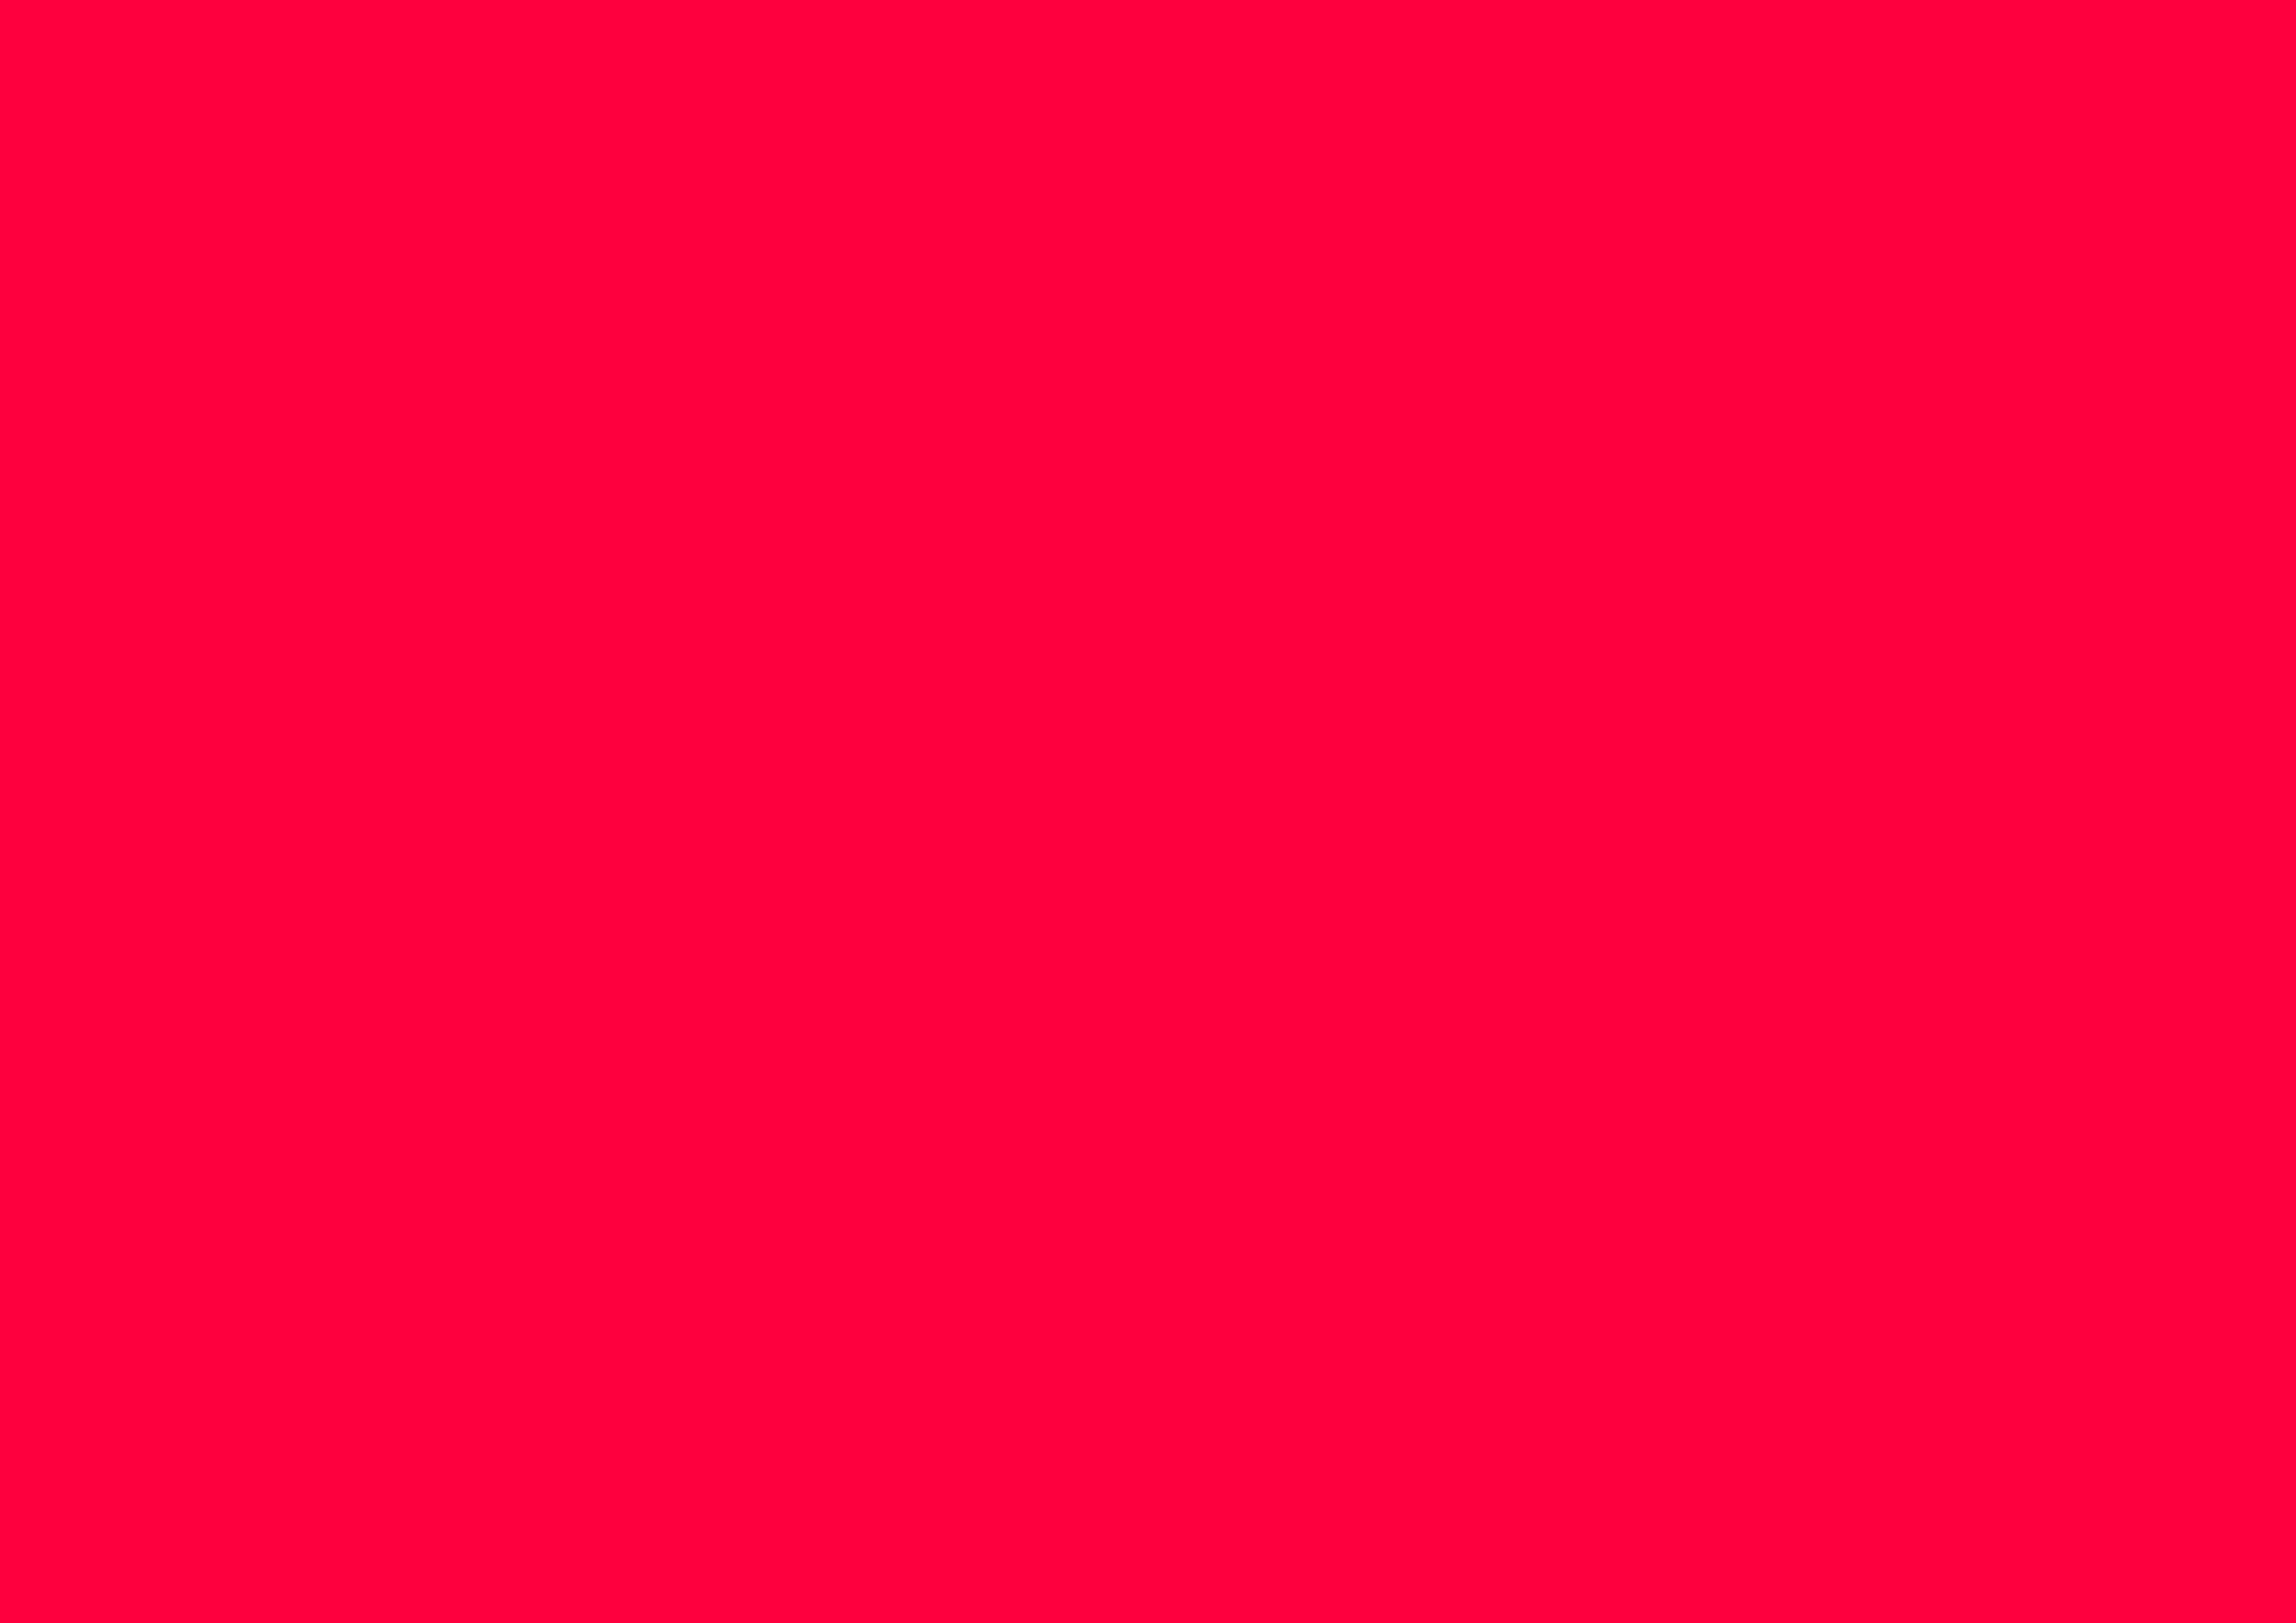 3508x2480 Electric Crimson Solid Color Background